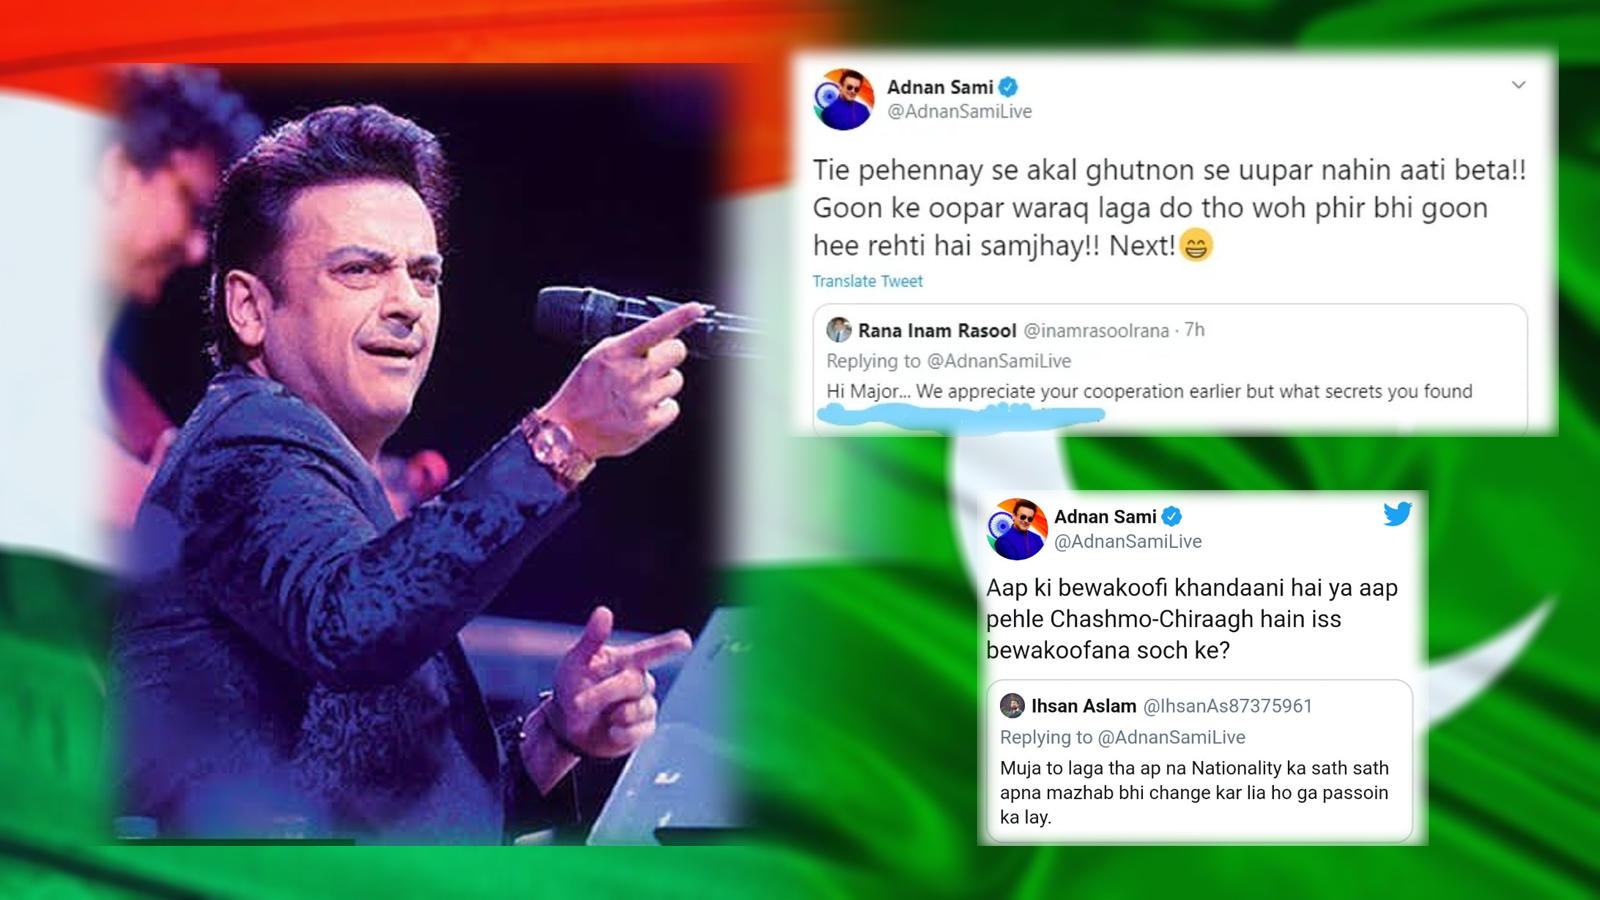 trolls-call-adnan-sami-a-pakistani-spy-again-singer-hits-back